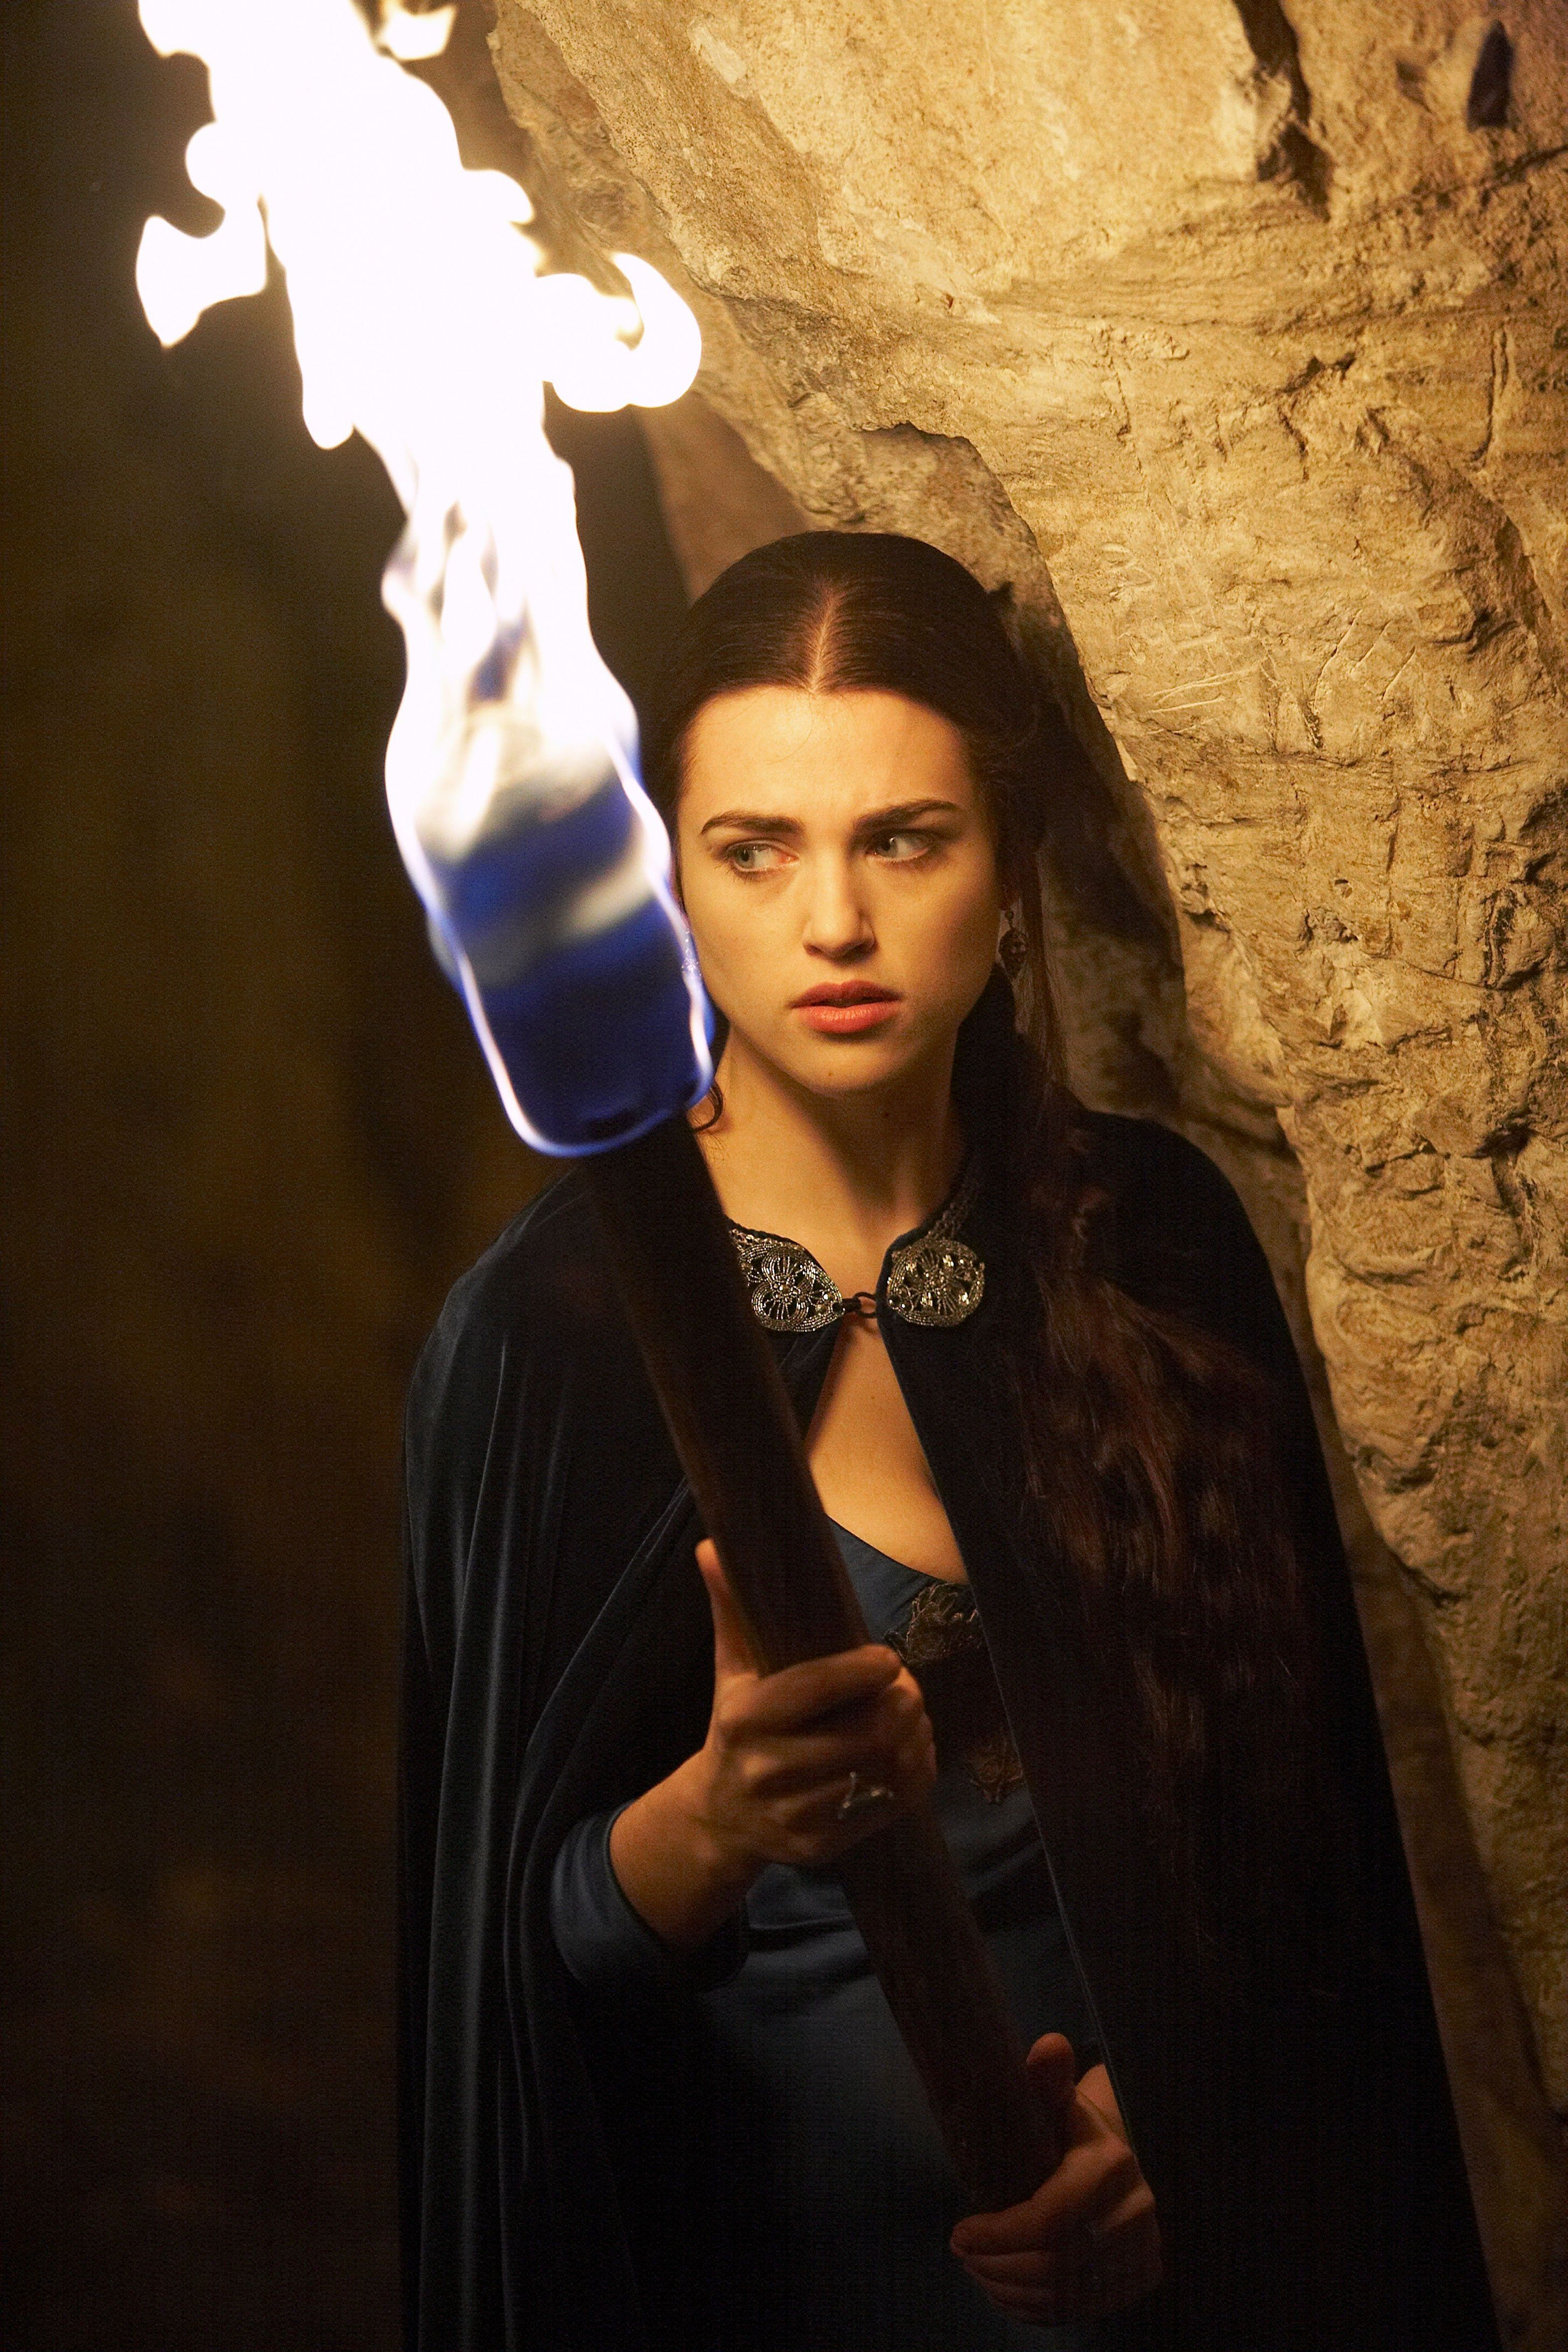 Merlin - Season 1 Episode 3 Still (With images) | Merlin, Merlin ...